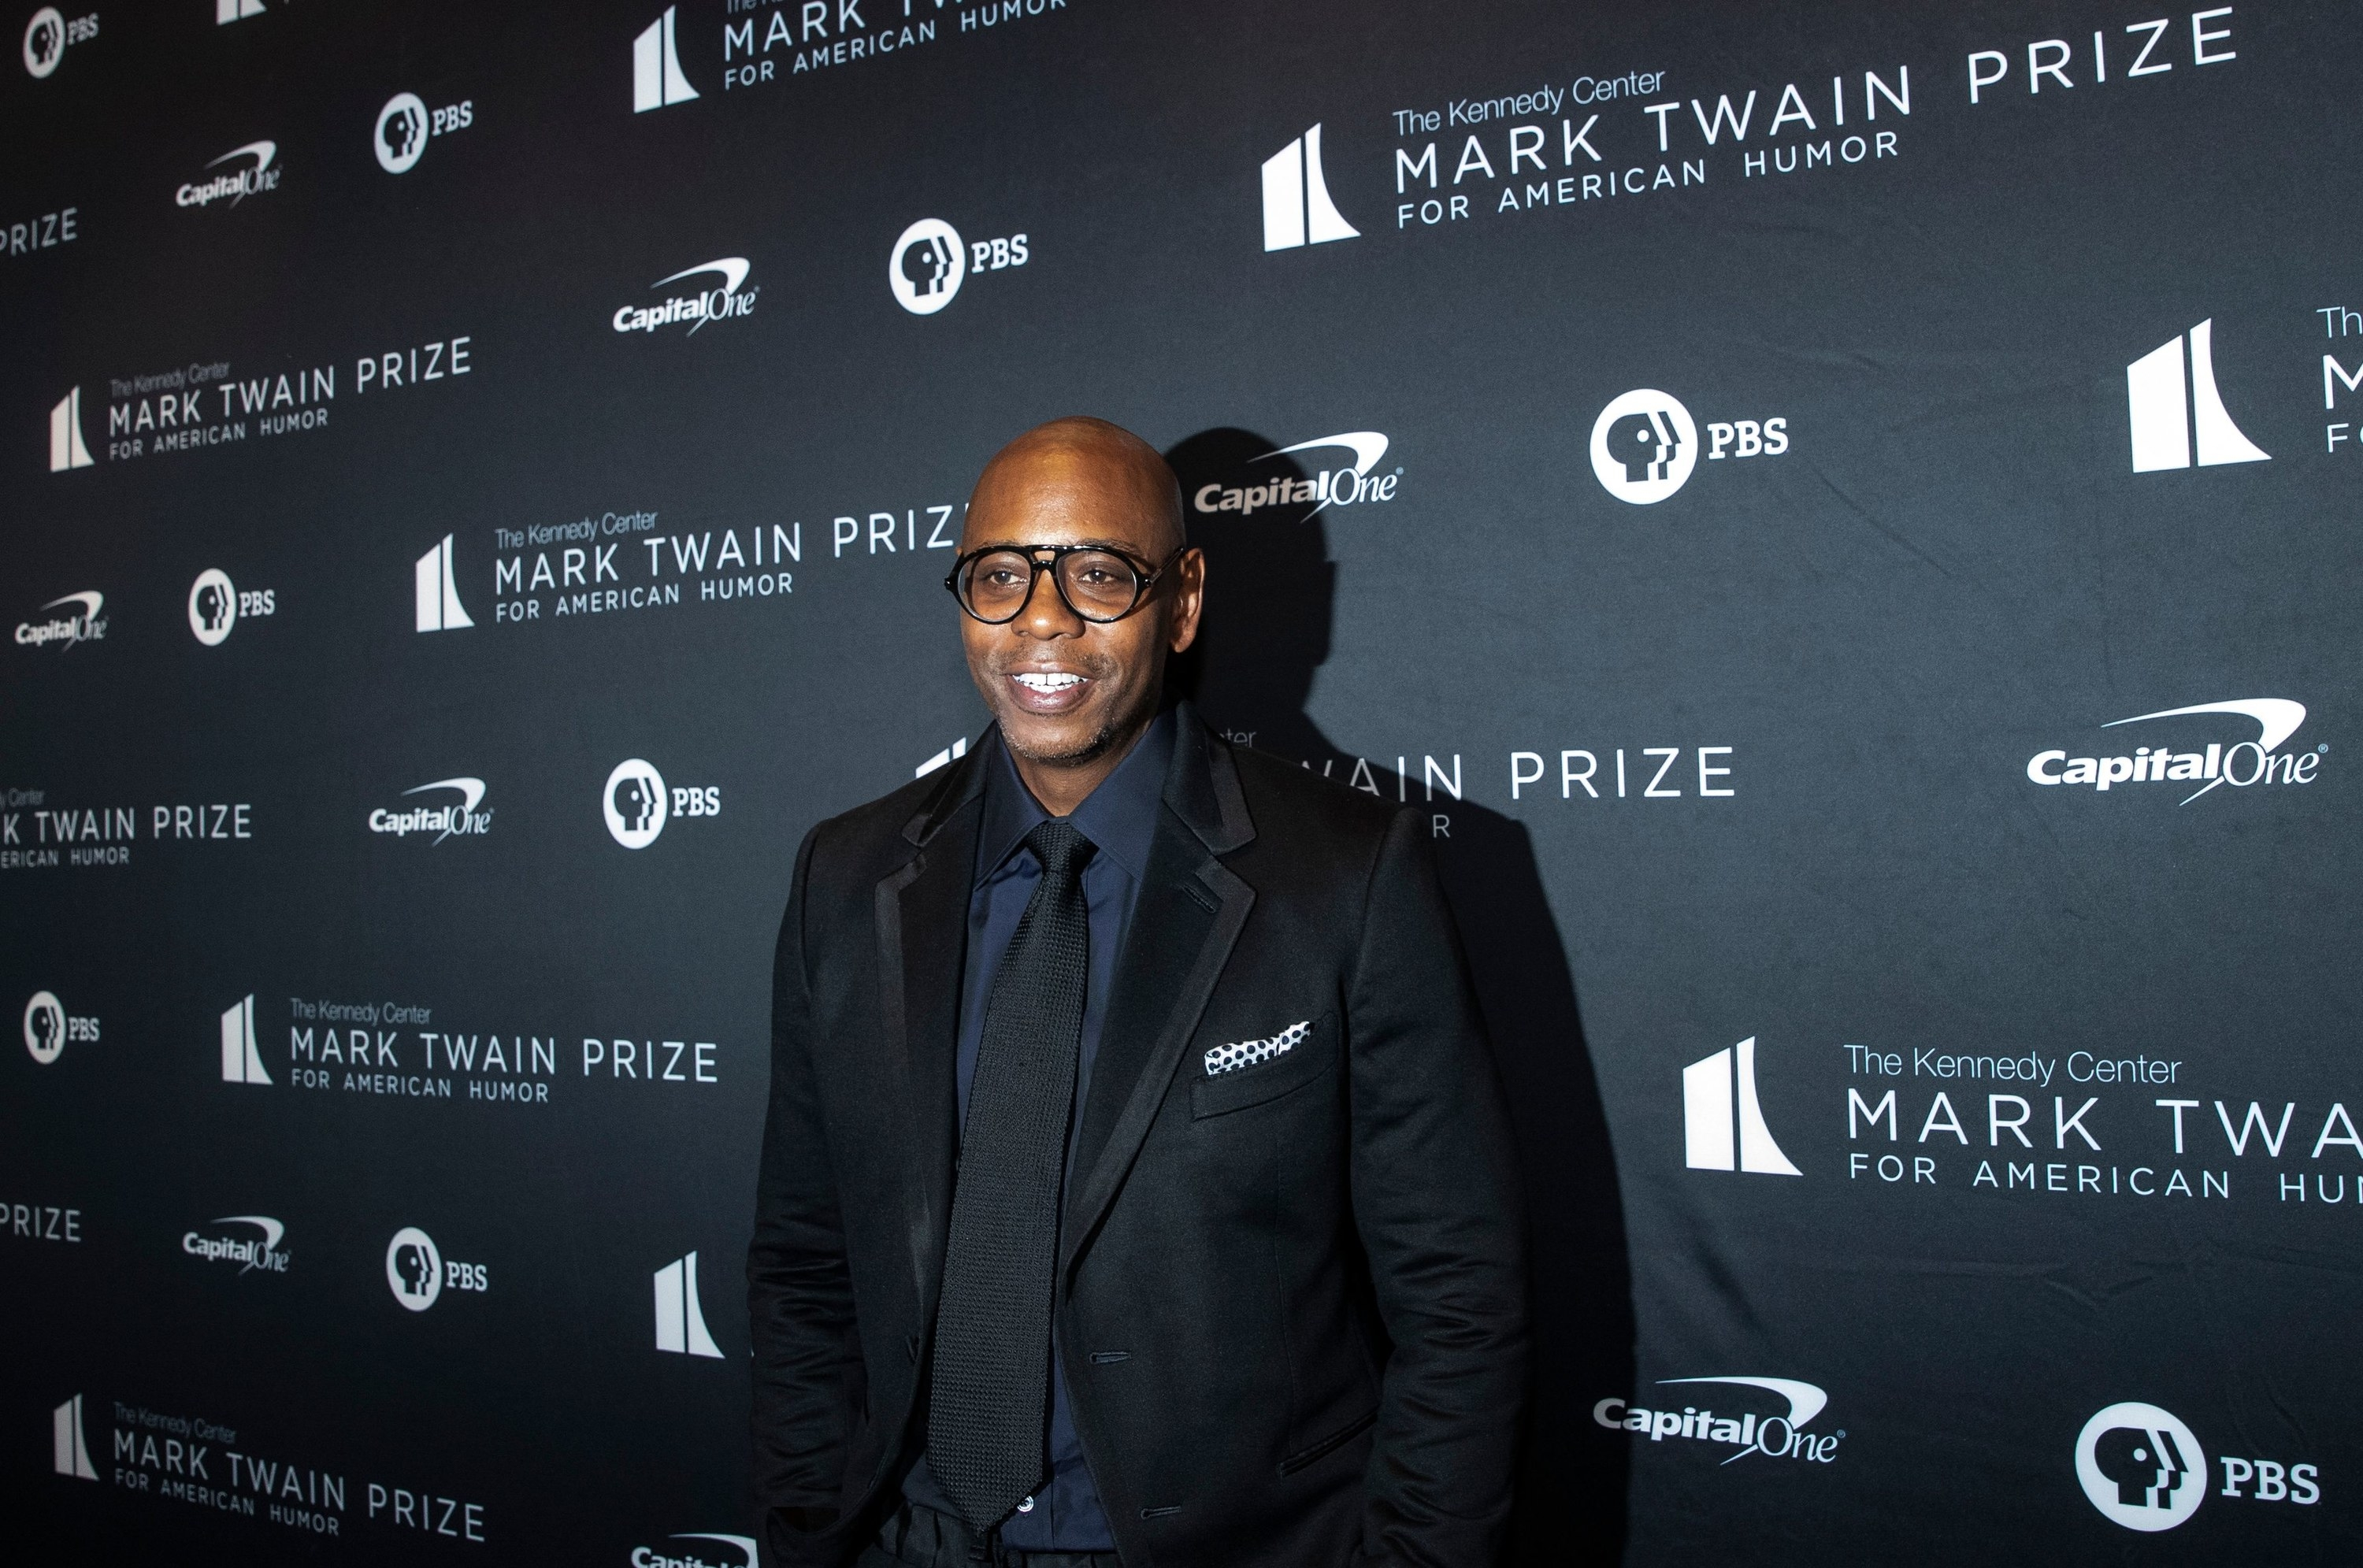 Comedian Dave Chappelle arrives at the Kennedy Center for the Mark Twain Award for American Humor